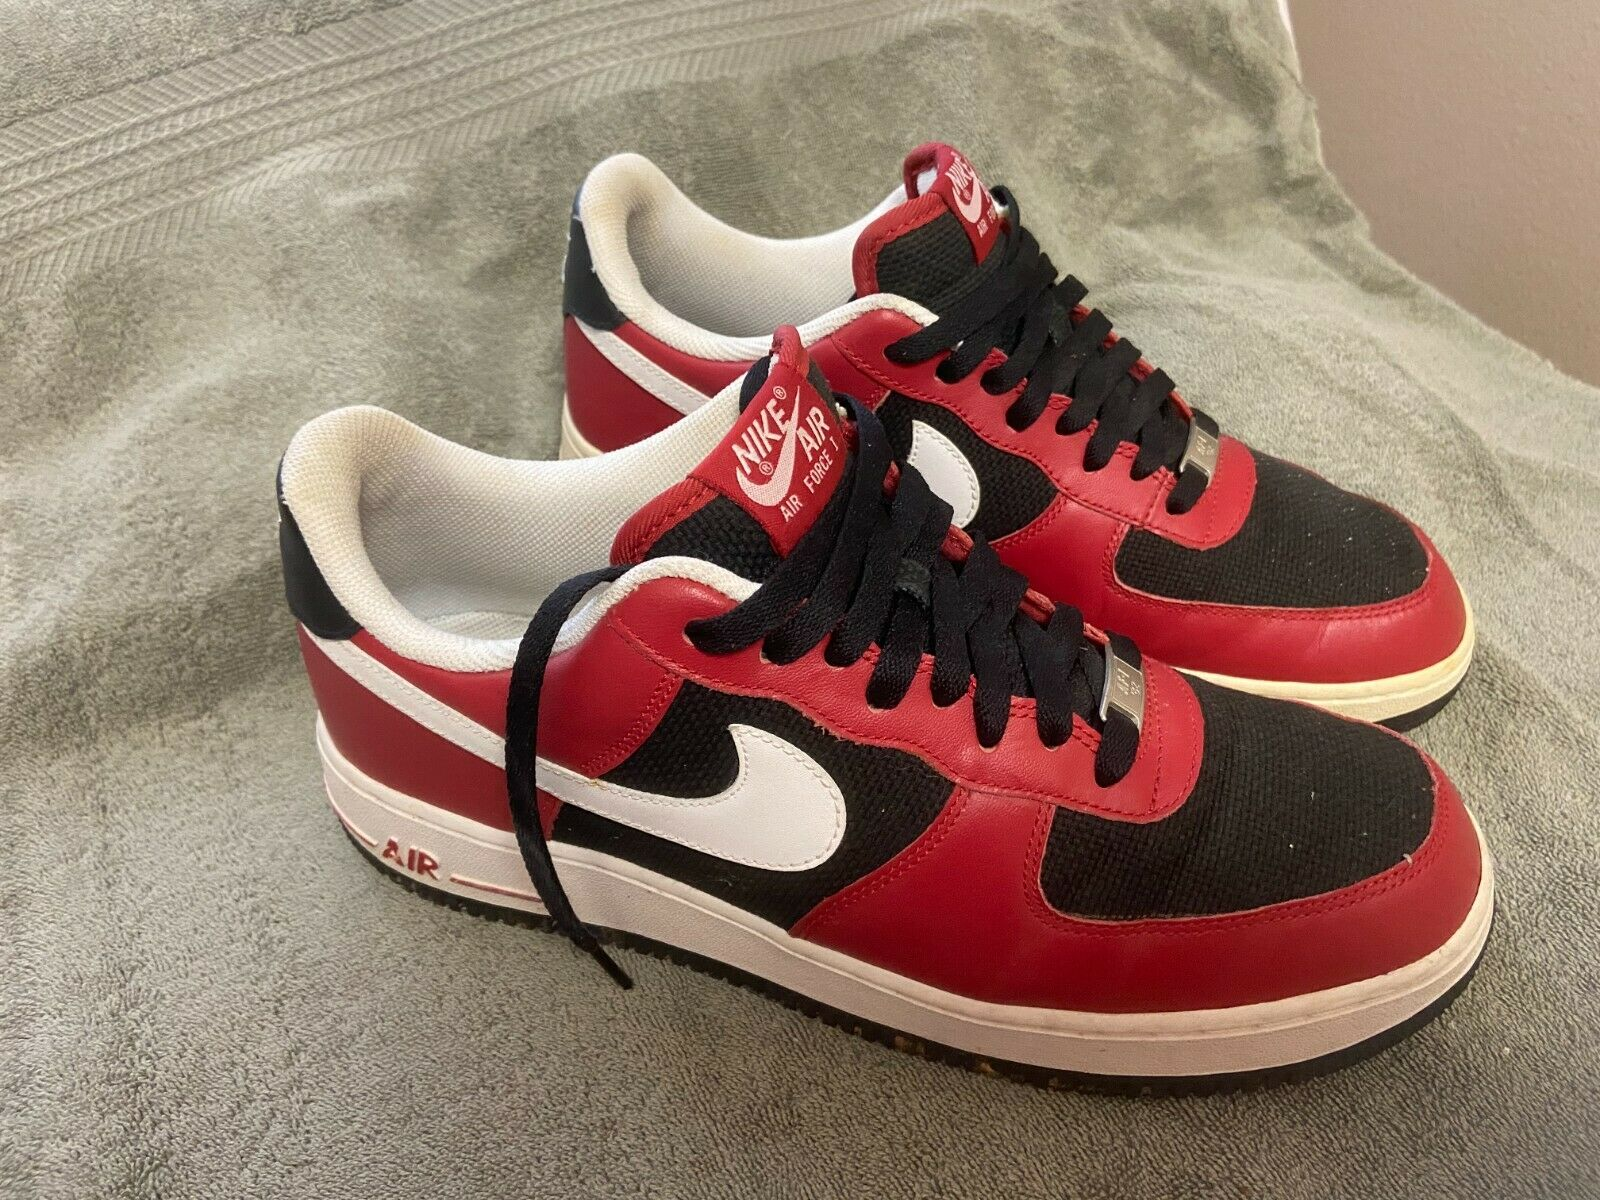 NIKE Air Force 1 Rare '82 Low Top Shoes Sz 11 Varsity Red White Black 315122-600